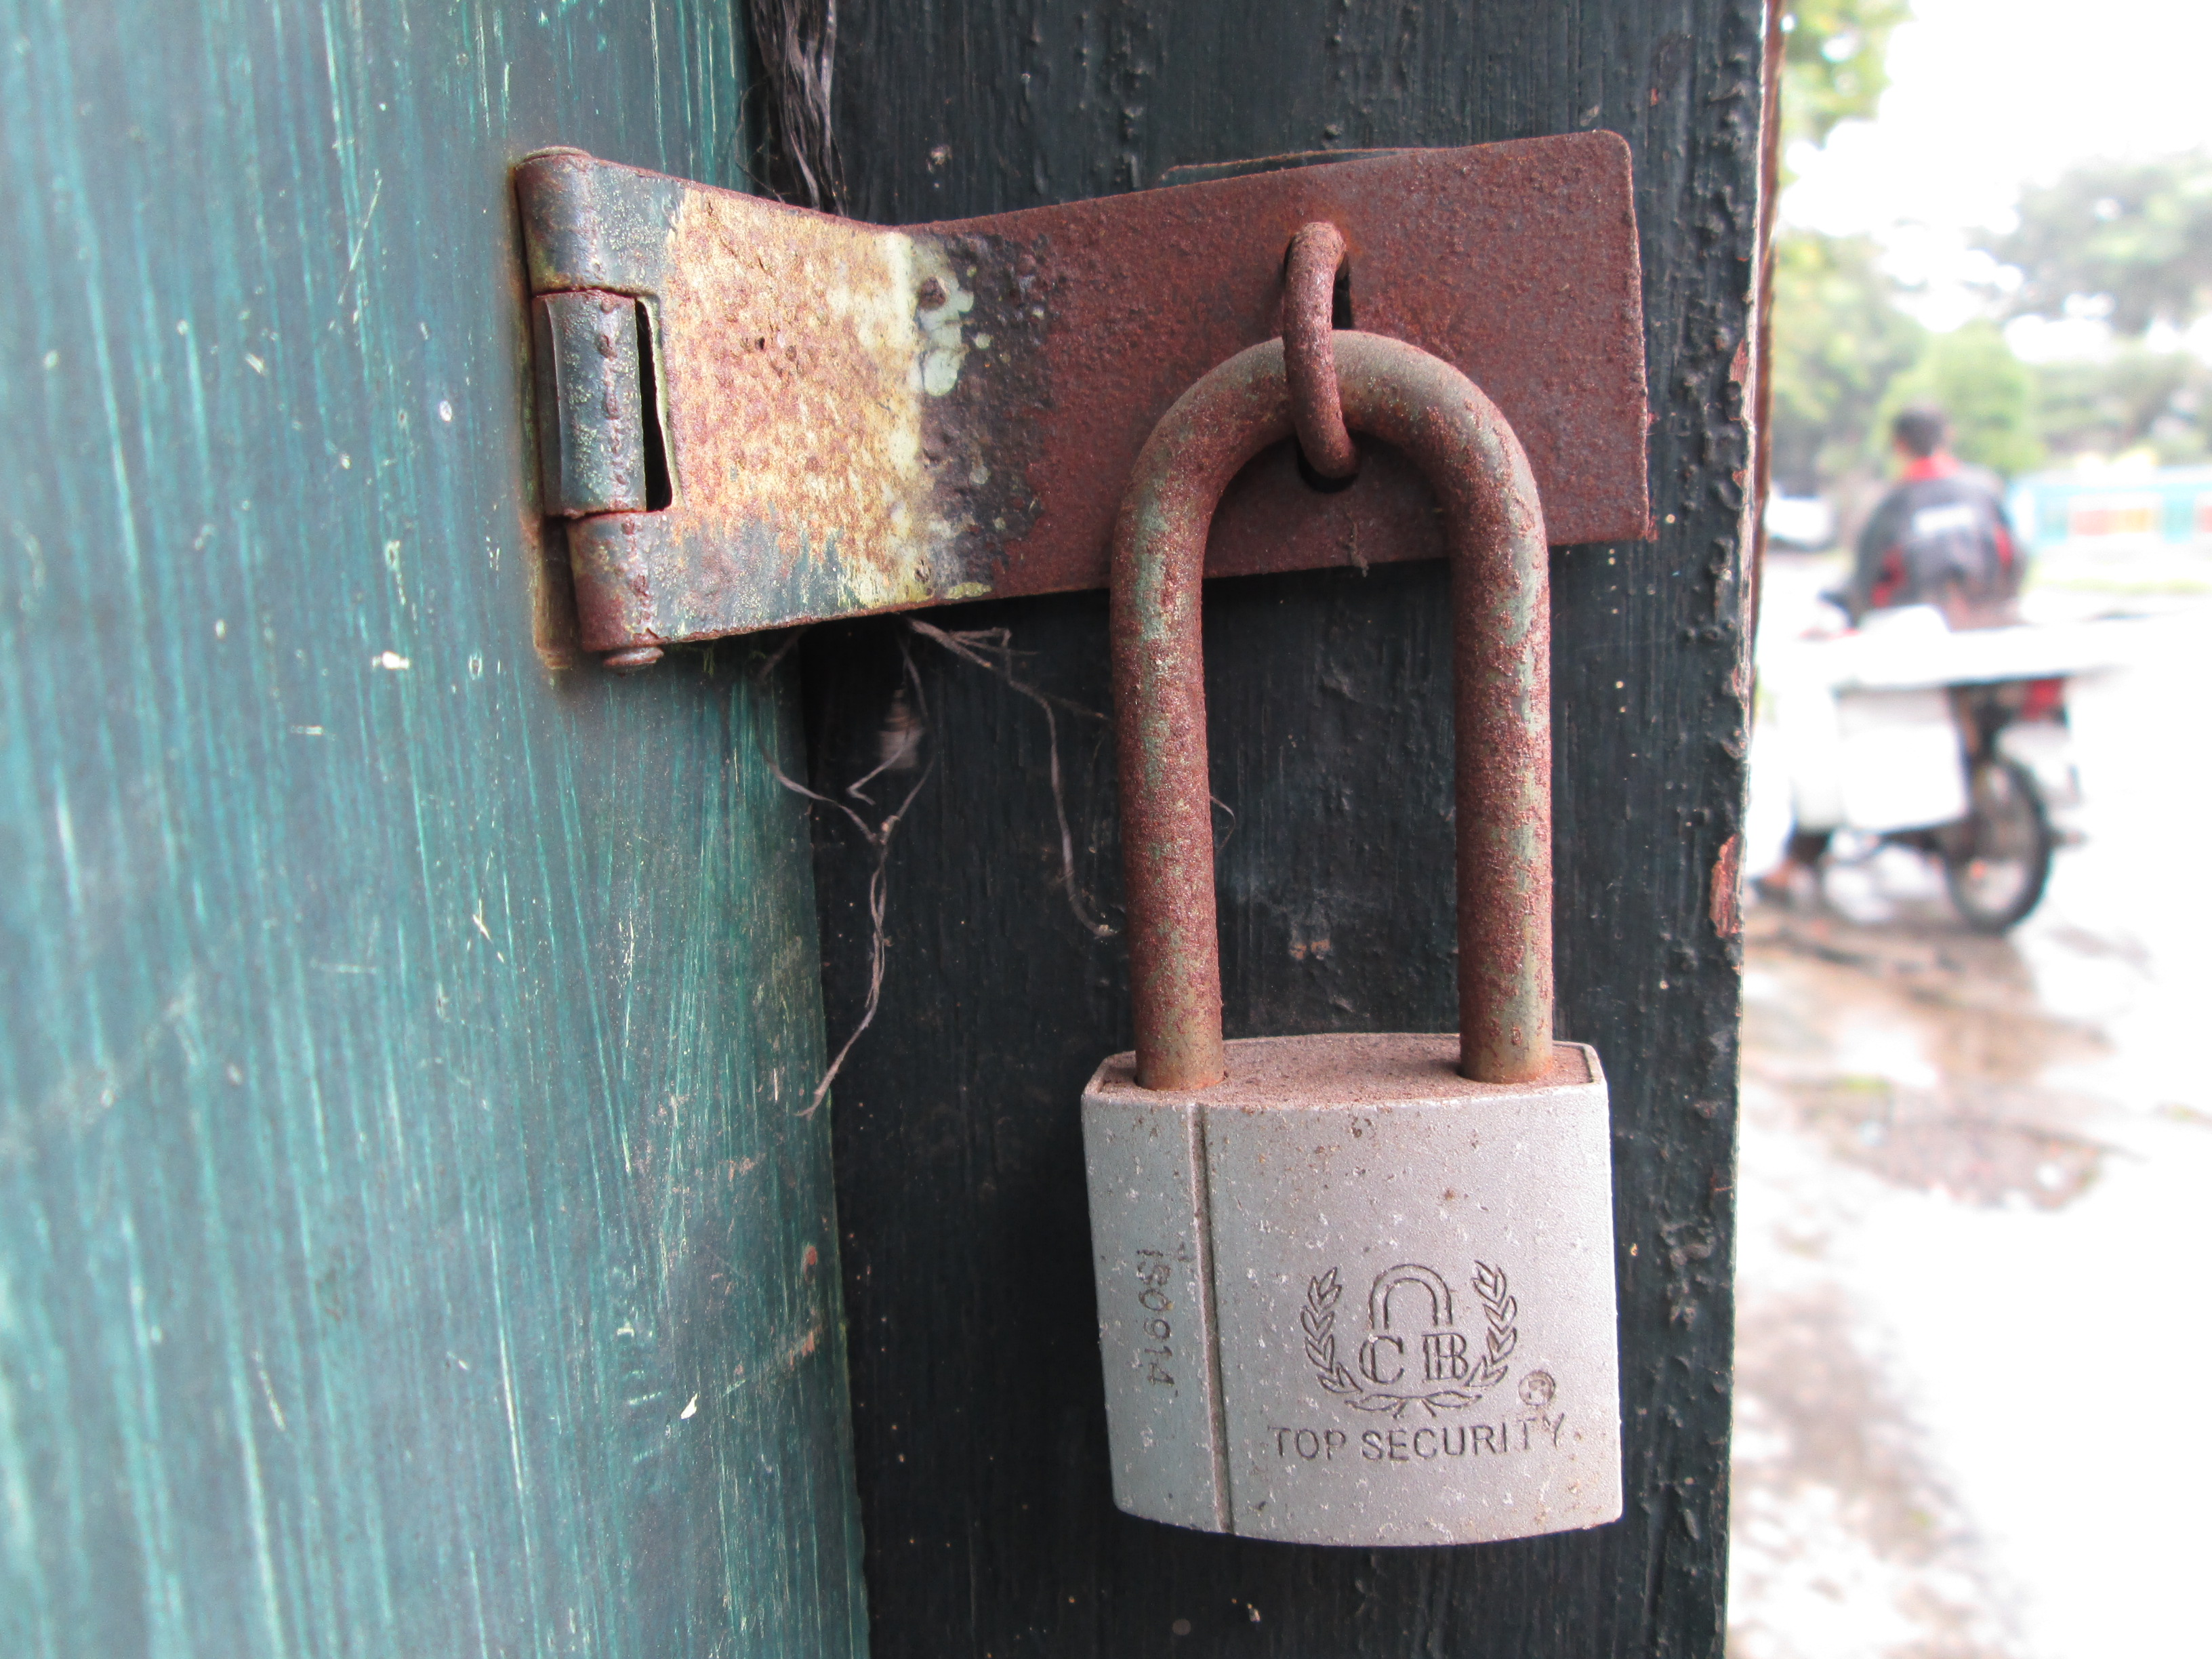 Lock, Door, Green, Iron, Rusted, HQ Photo